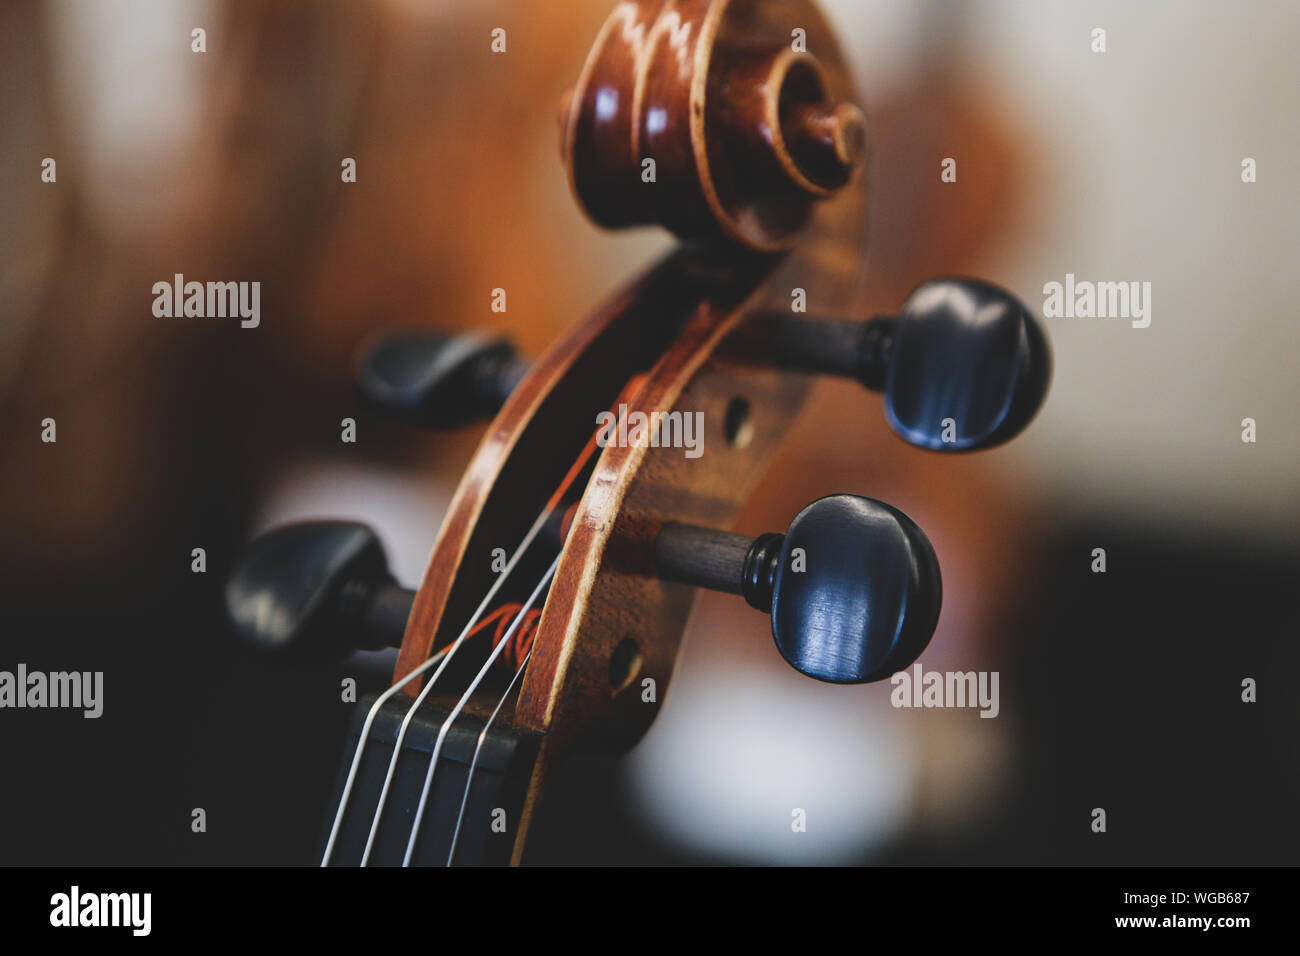 Details with the scroll, peg box, tuning pegs, strings, neck and fingerboard of a violin before a symphonic classical concert Stock Photo